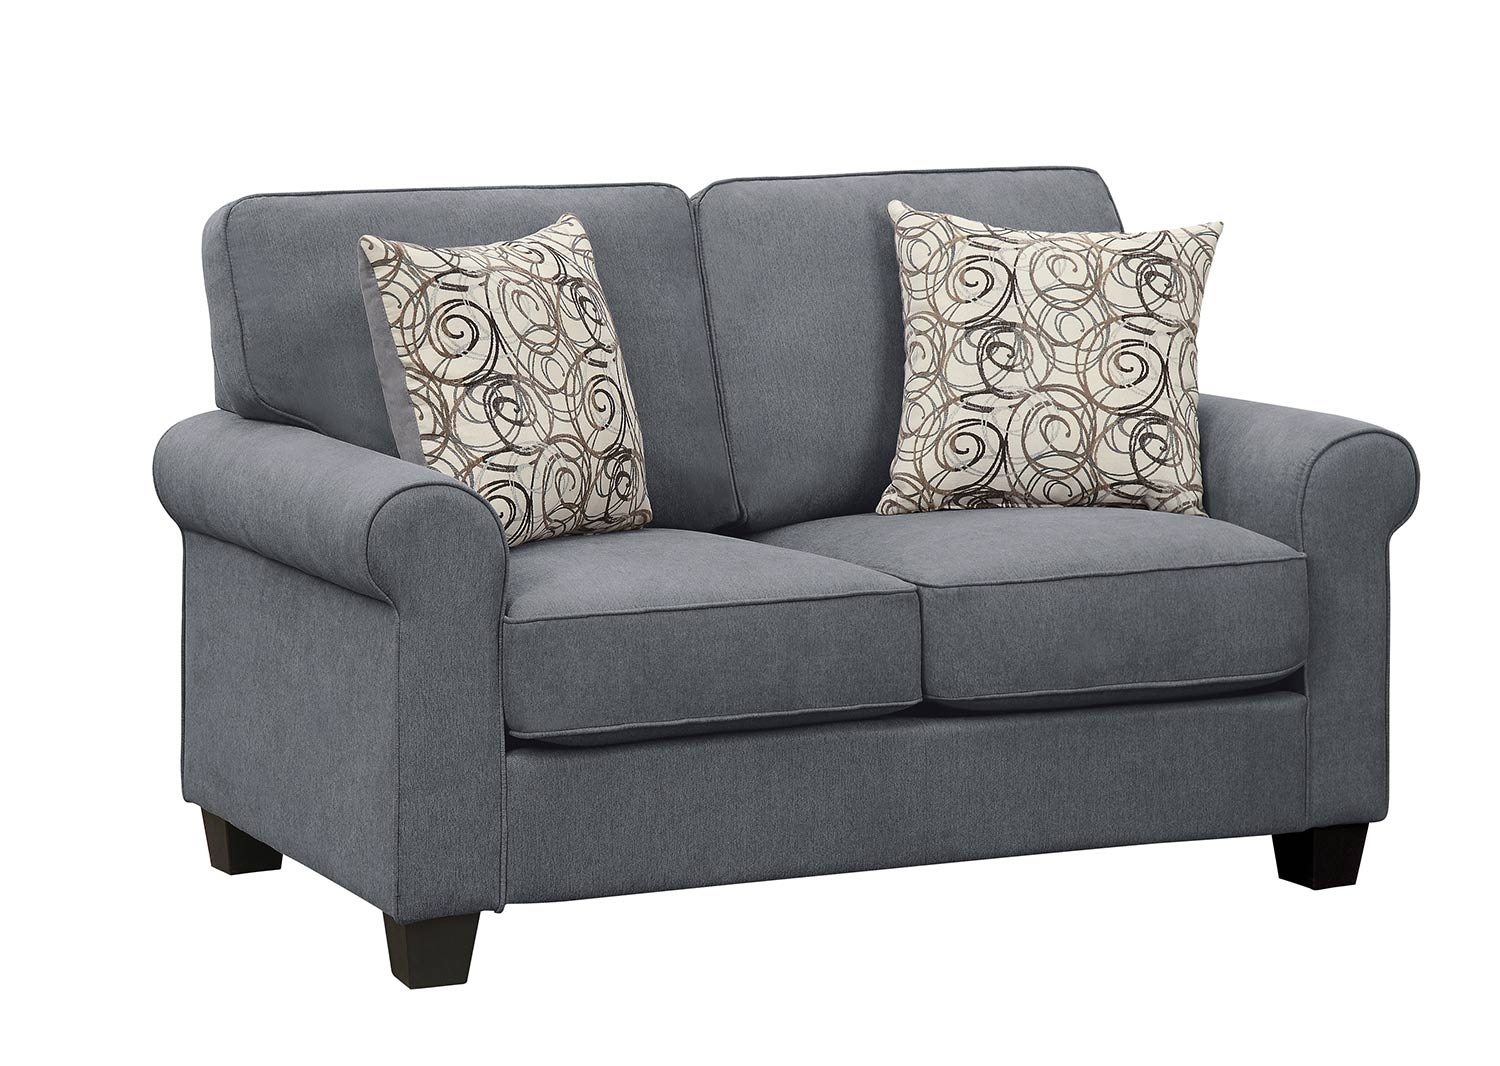 Homelegance Selkirk Love Seat - Gray